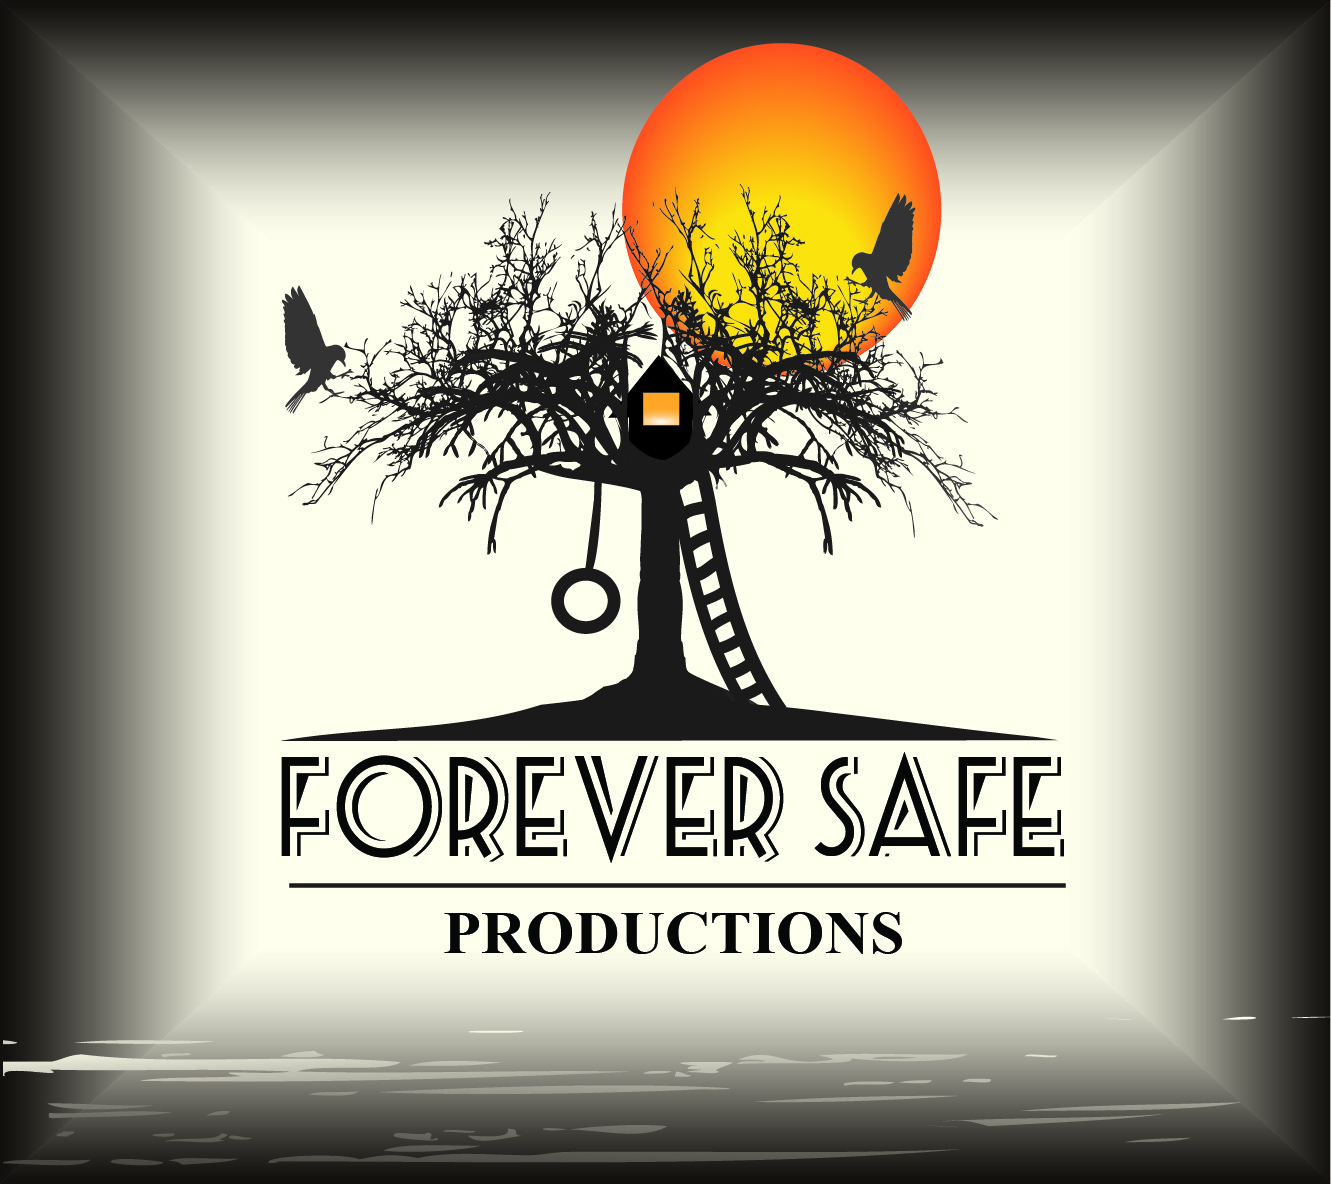 Logo Design by lde05 - Entry No. 38 in the Logo Design Contest Inspiring Logo Design for Forever Safe Productions.